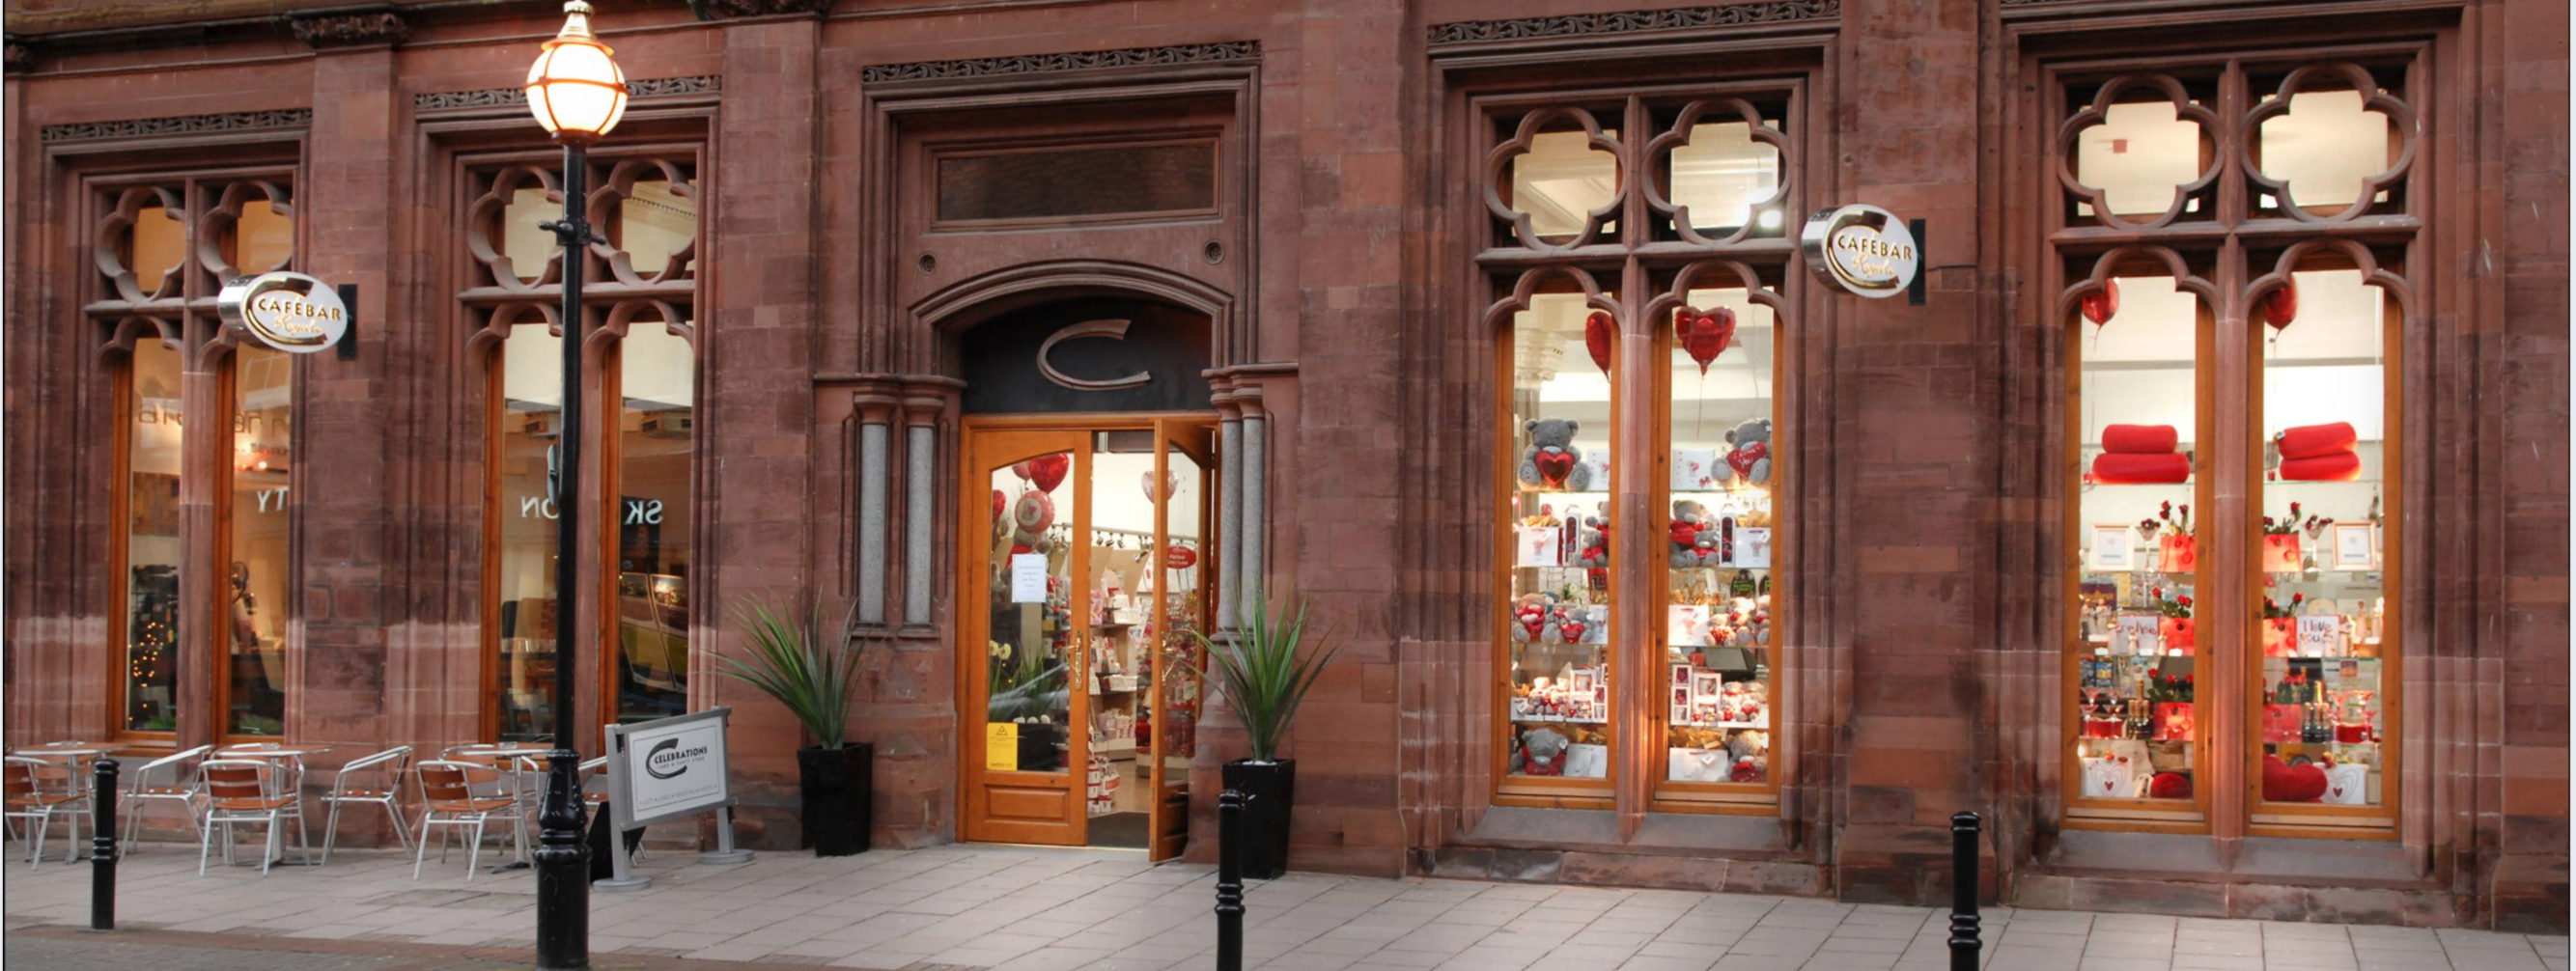 Above: Celebrations in Carlisle is an award-winning card, gift and café.